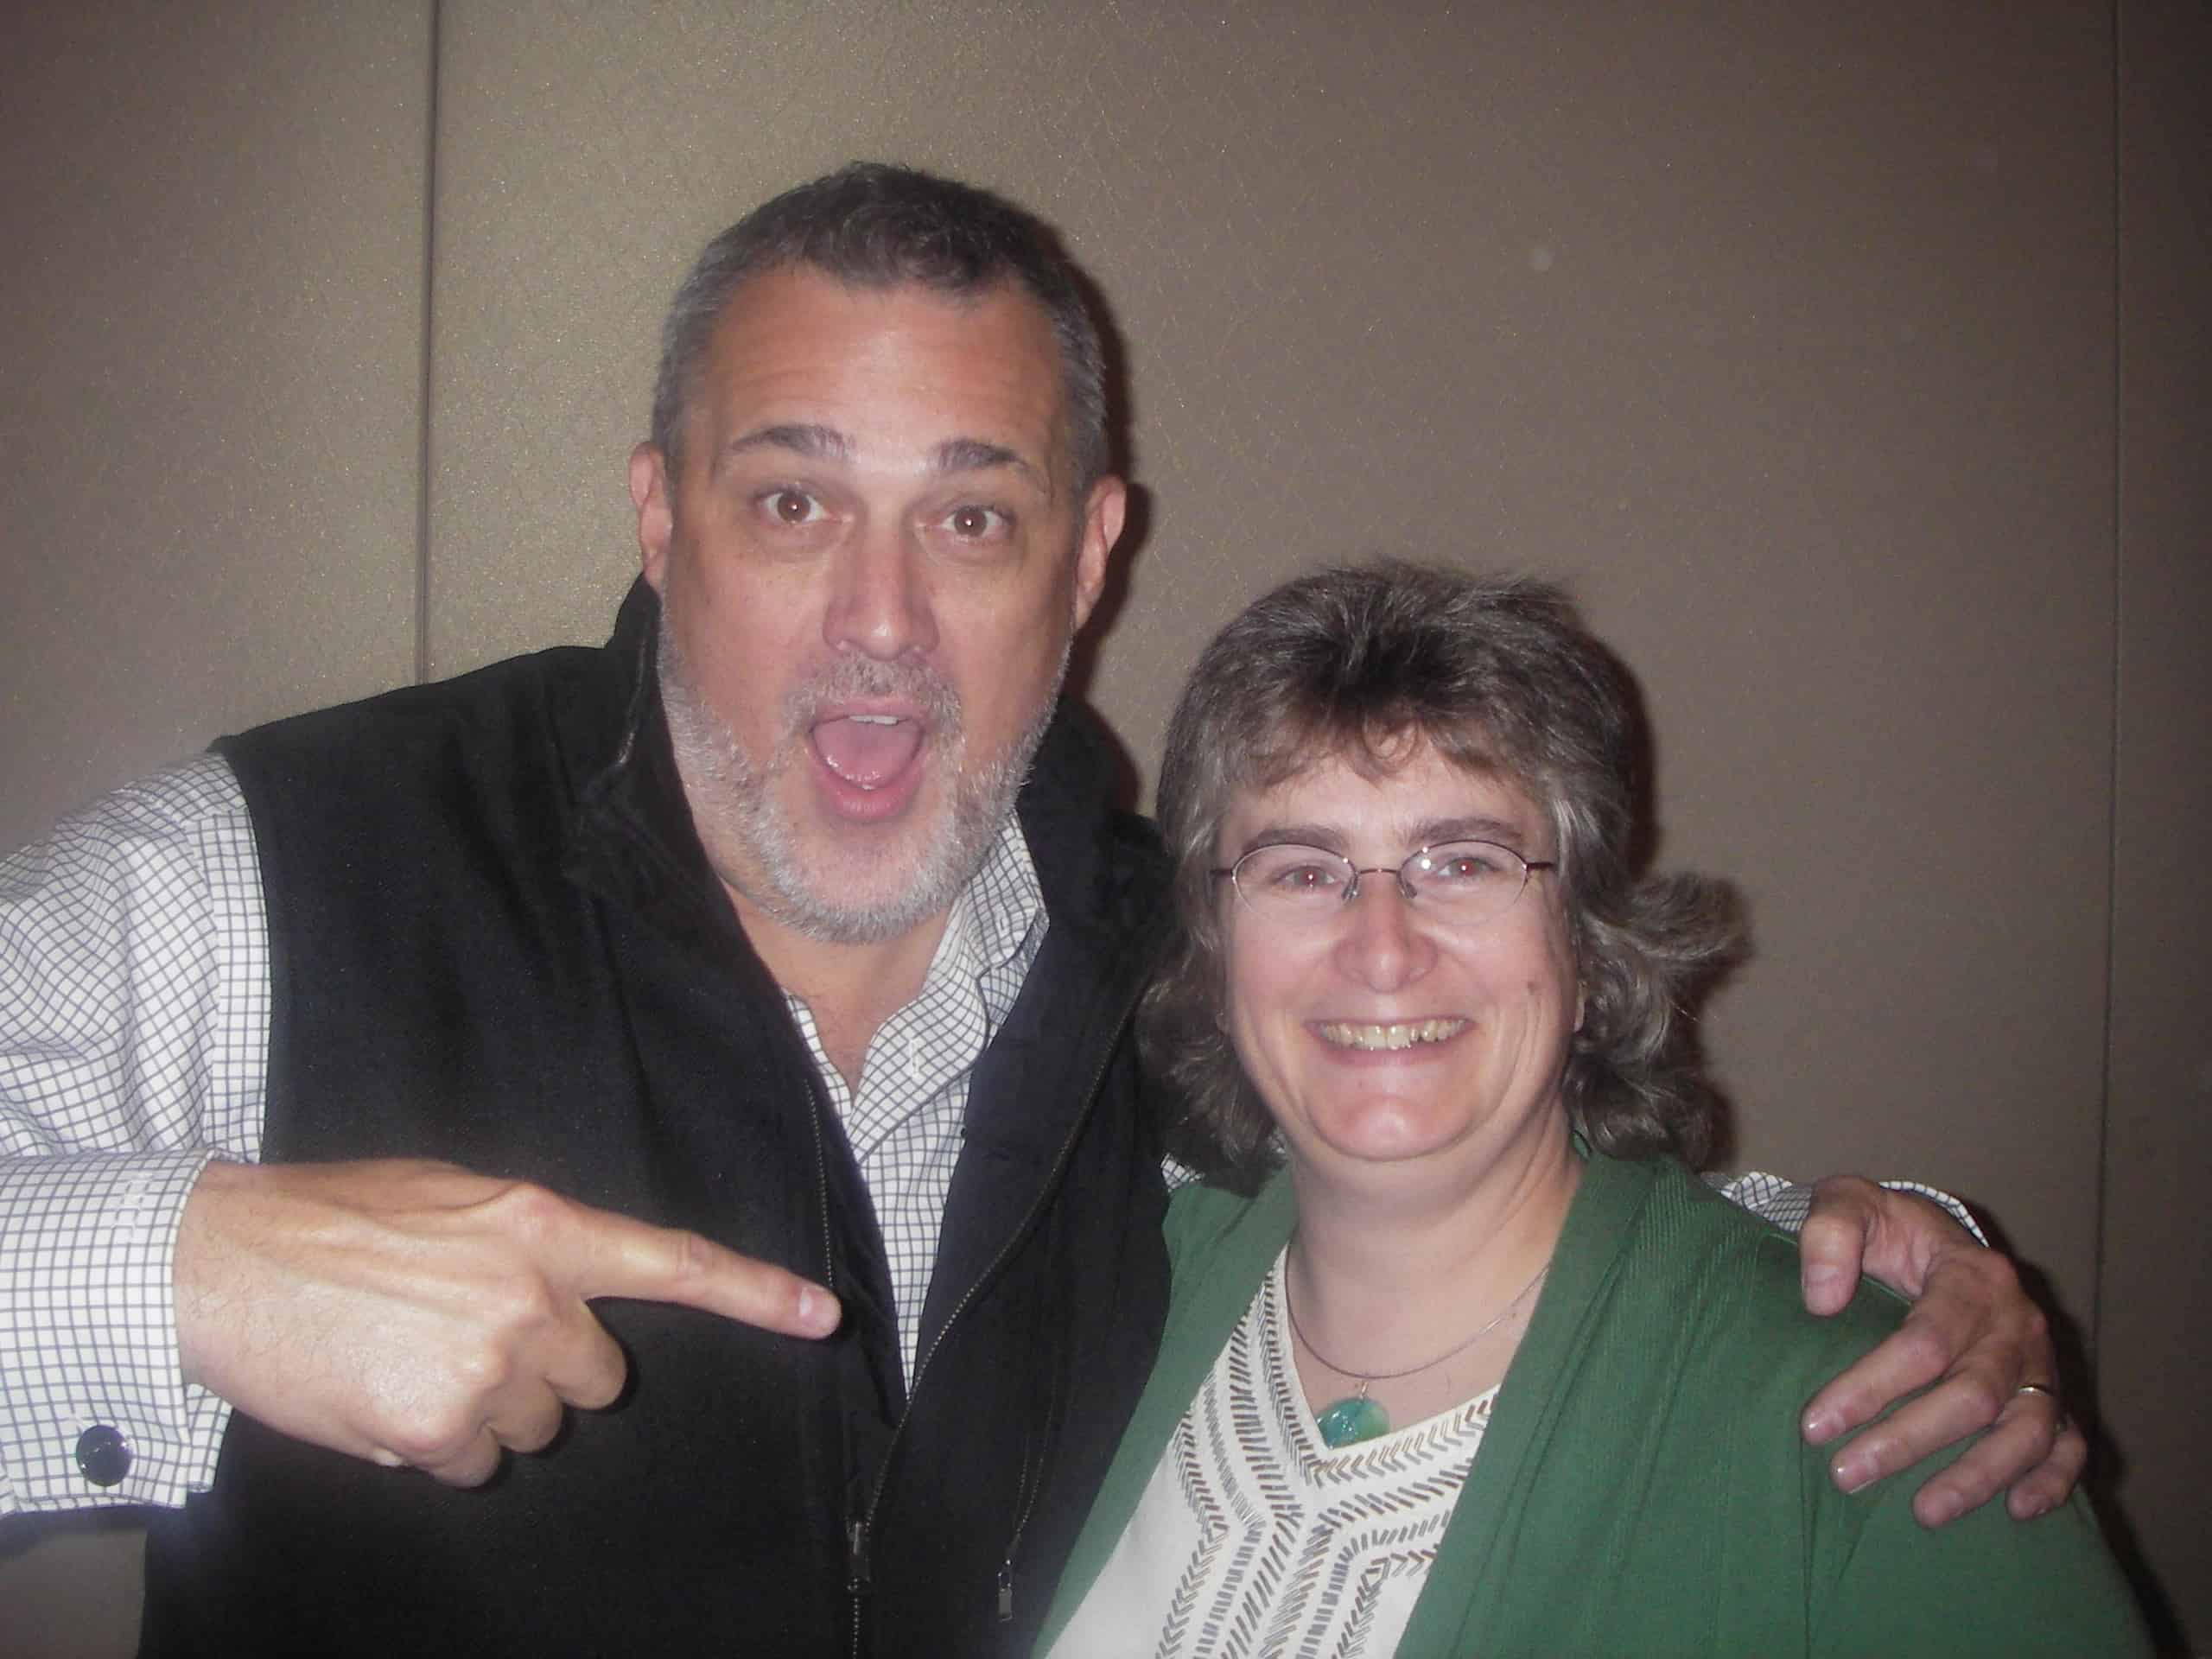 Tara R. Alemany with Jeffrey Hayzlett from The Hayzlett Group